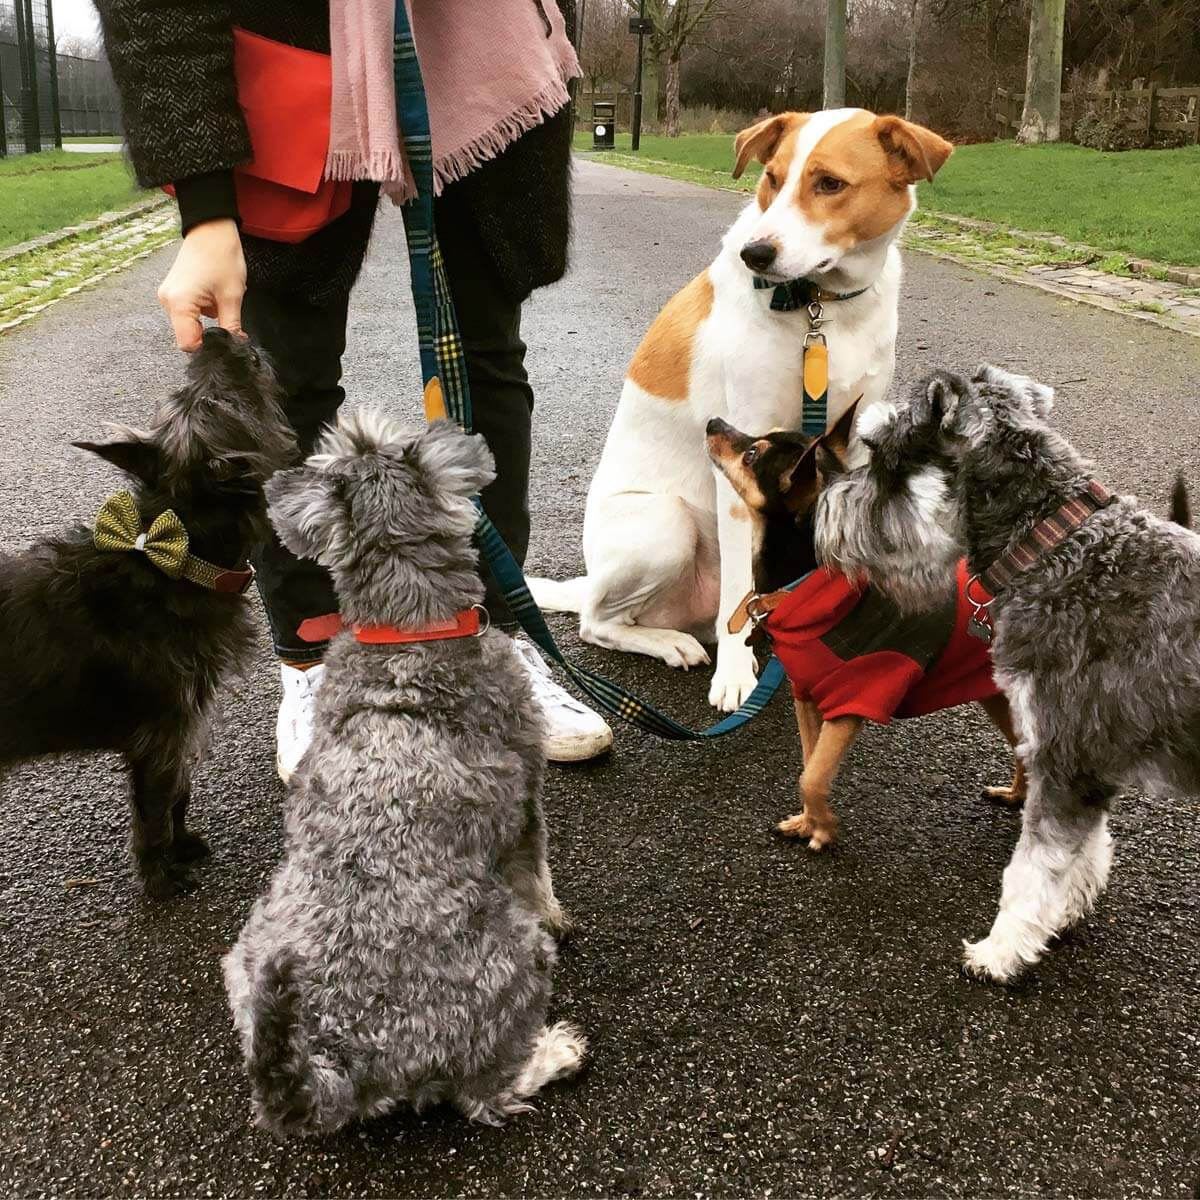 Ricci and friends are well behaved when dog treats are on offer